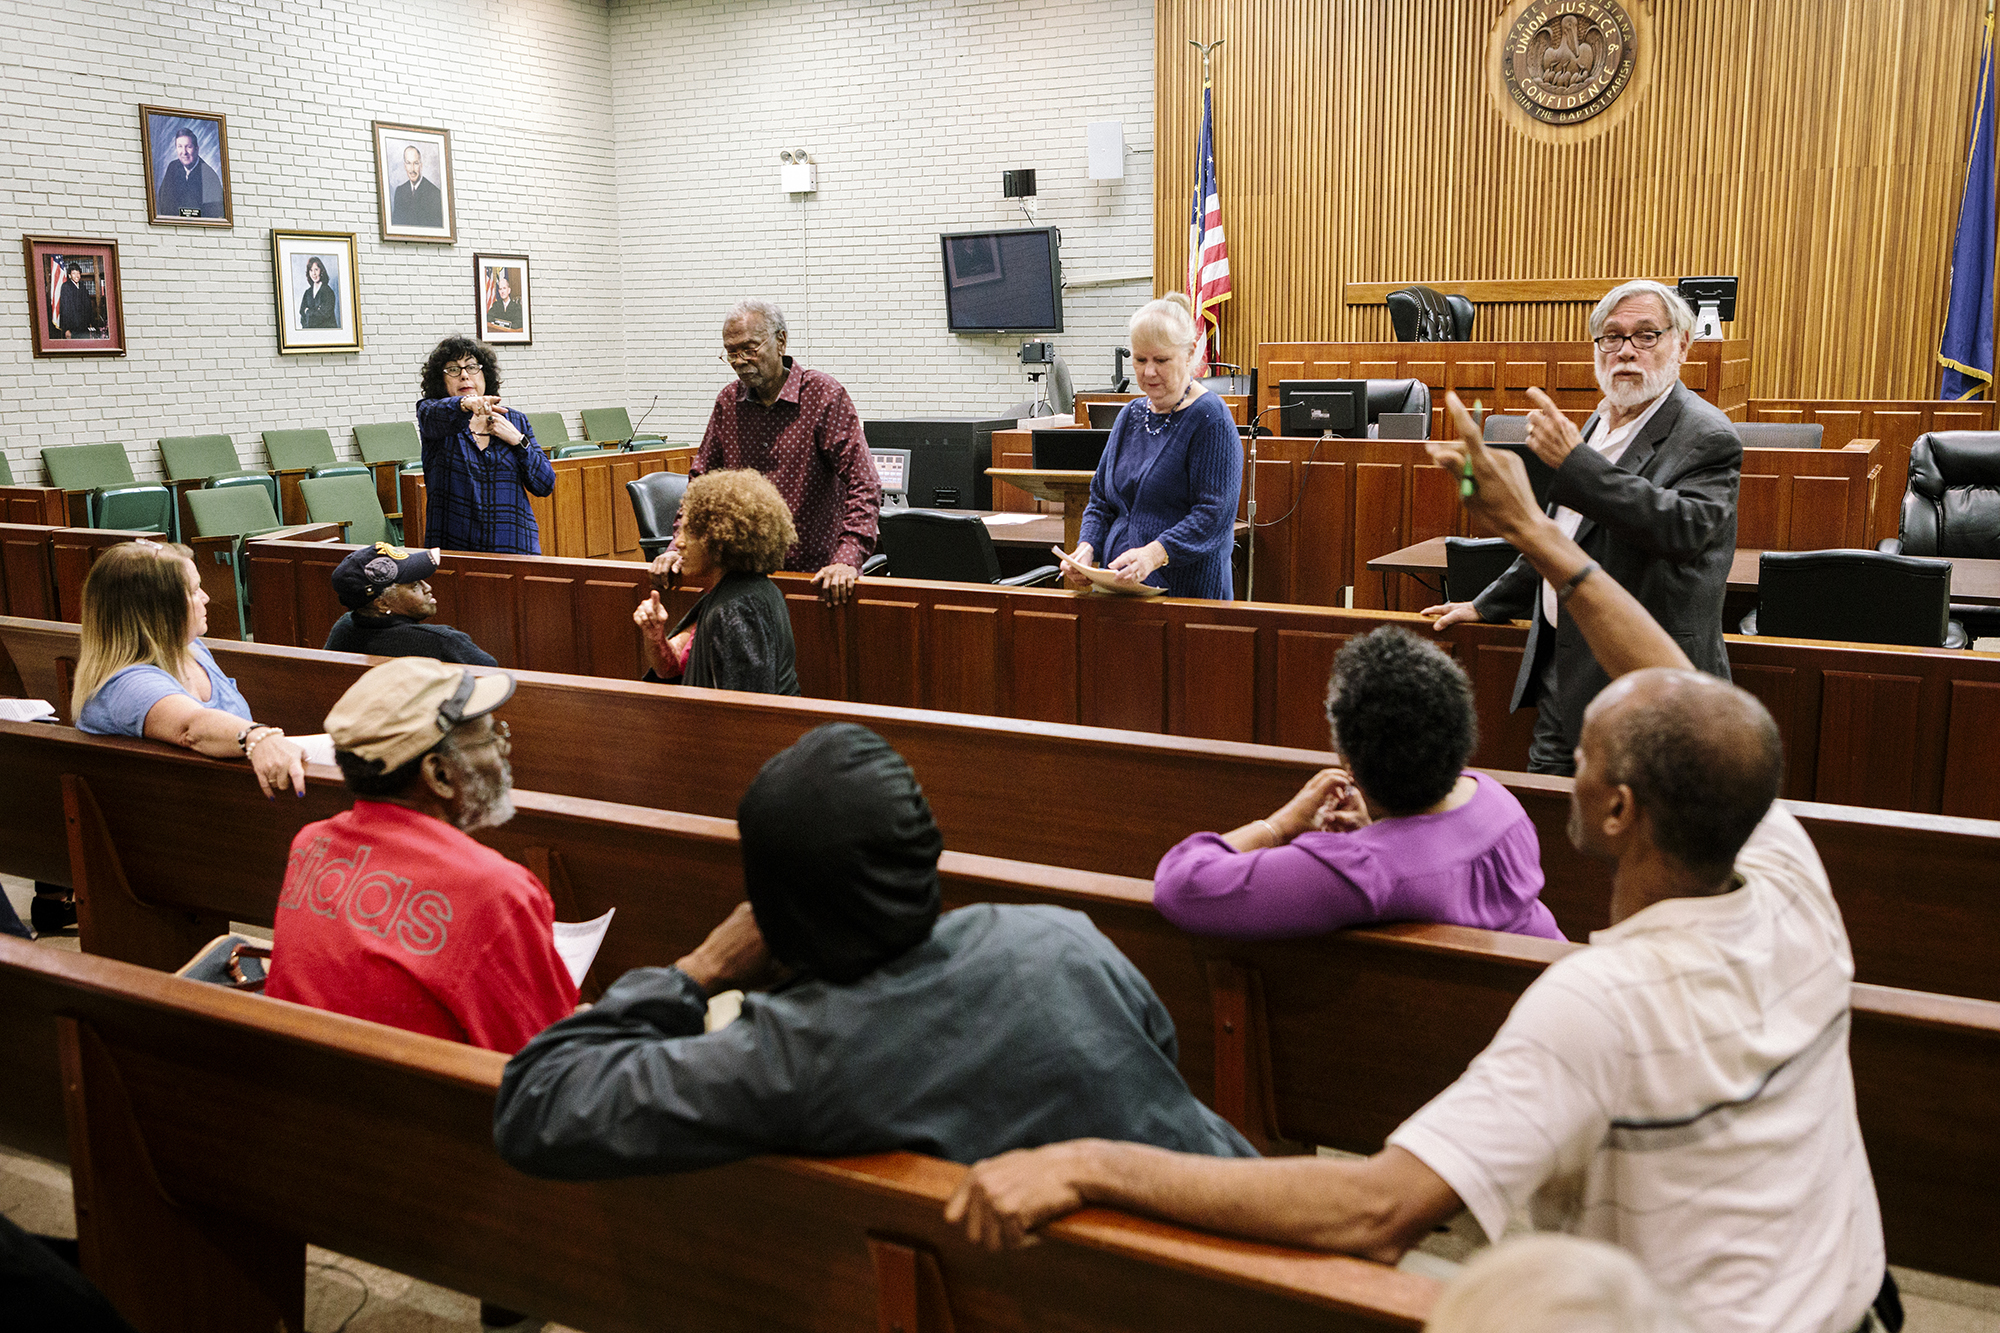 Edgard, LA - Feb. 20, 2017 - Community members and the Concerned Citizens of St. John Parish discuss concerns during a meeting held at the St. John Parish Clerk of Court.